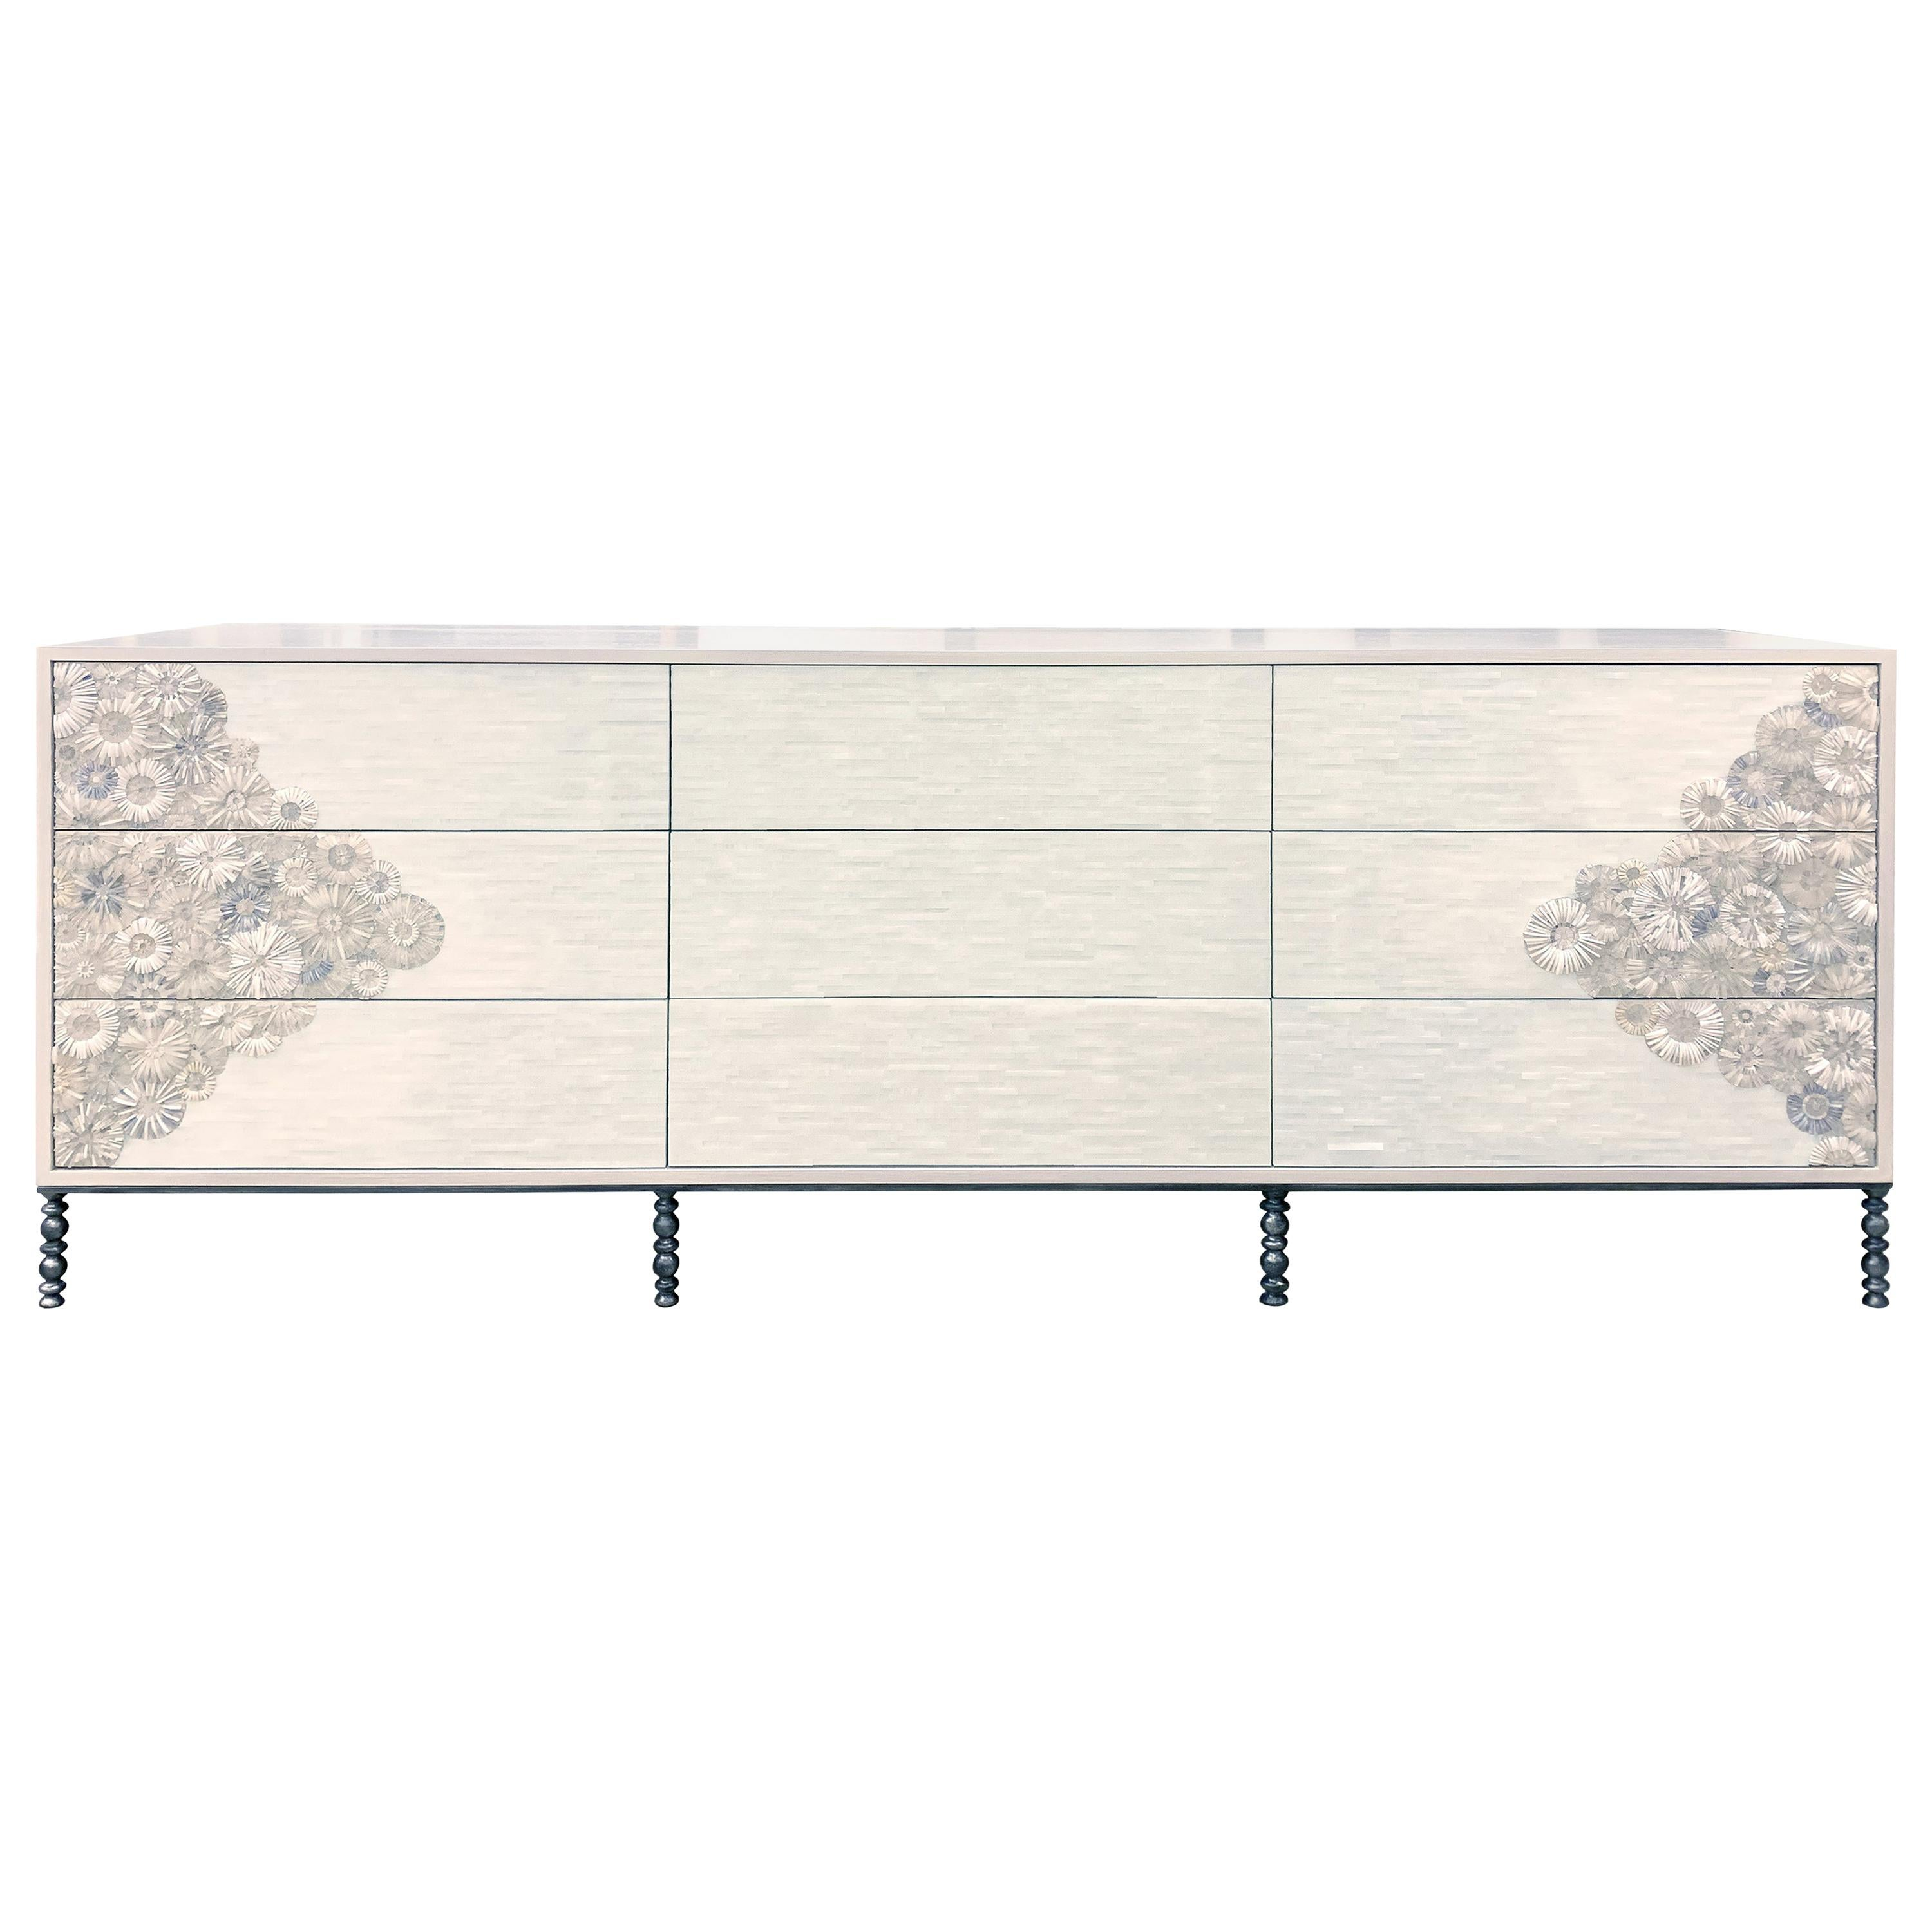 Customizable White Blossom Flower Glass Mosaic 9-Chest of Drawer by Ercole Home